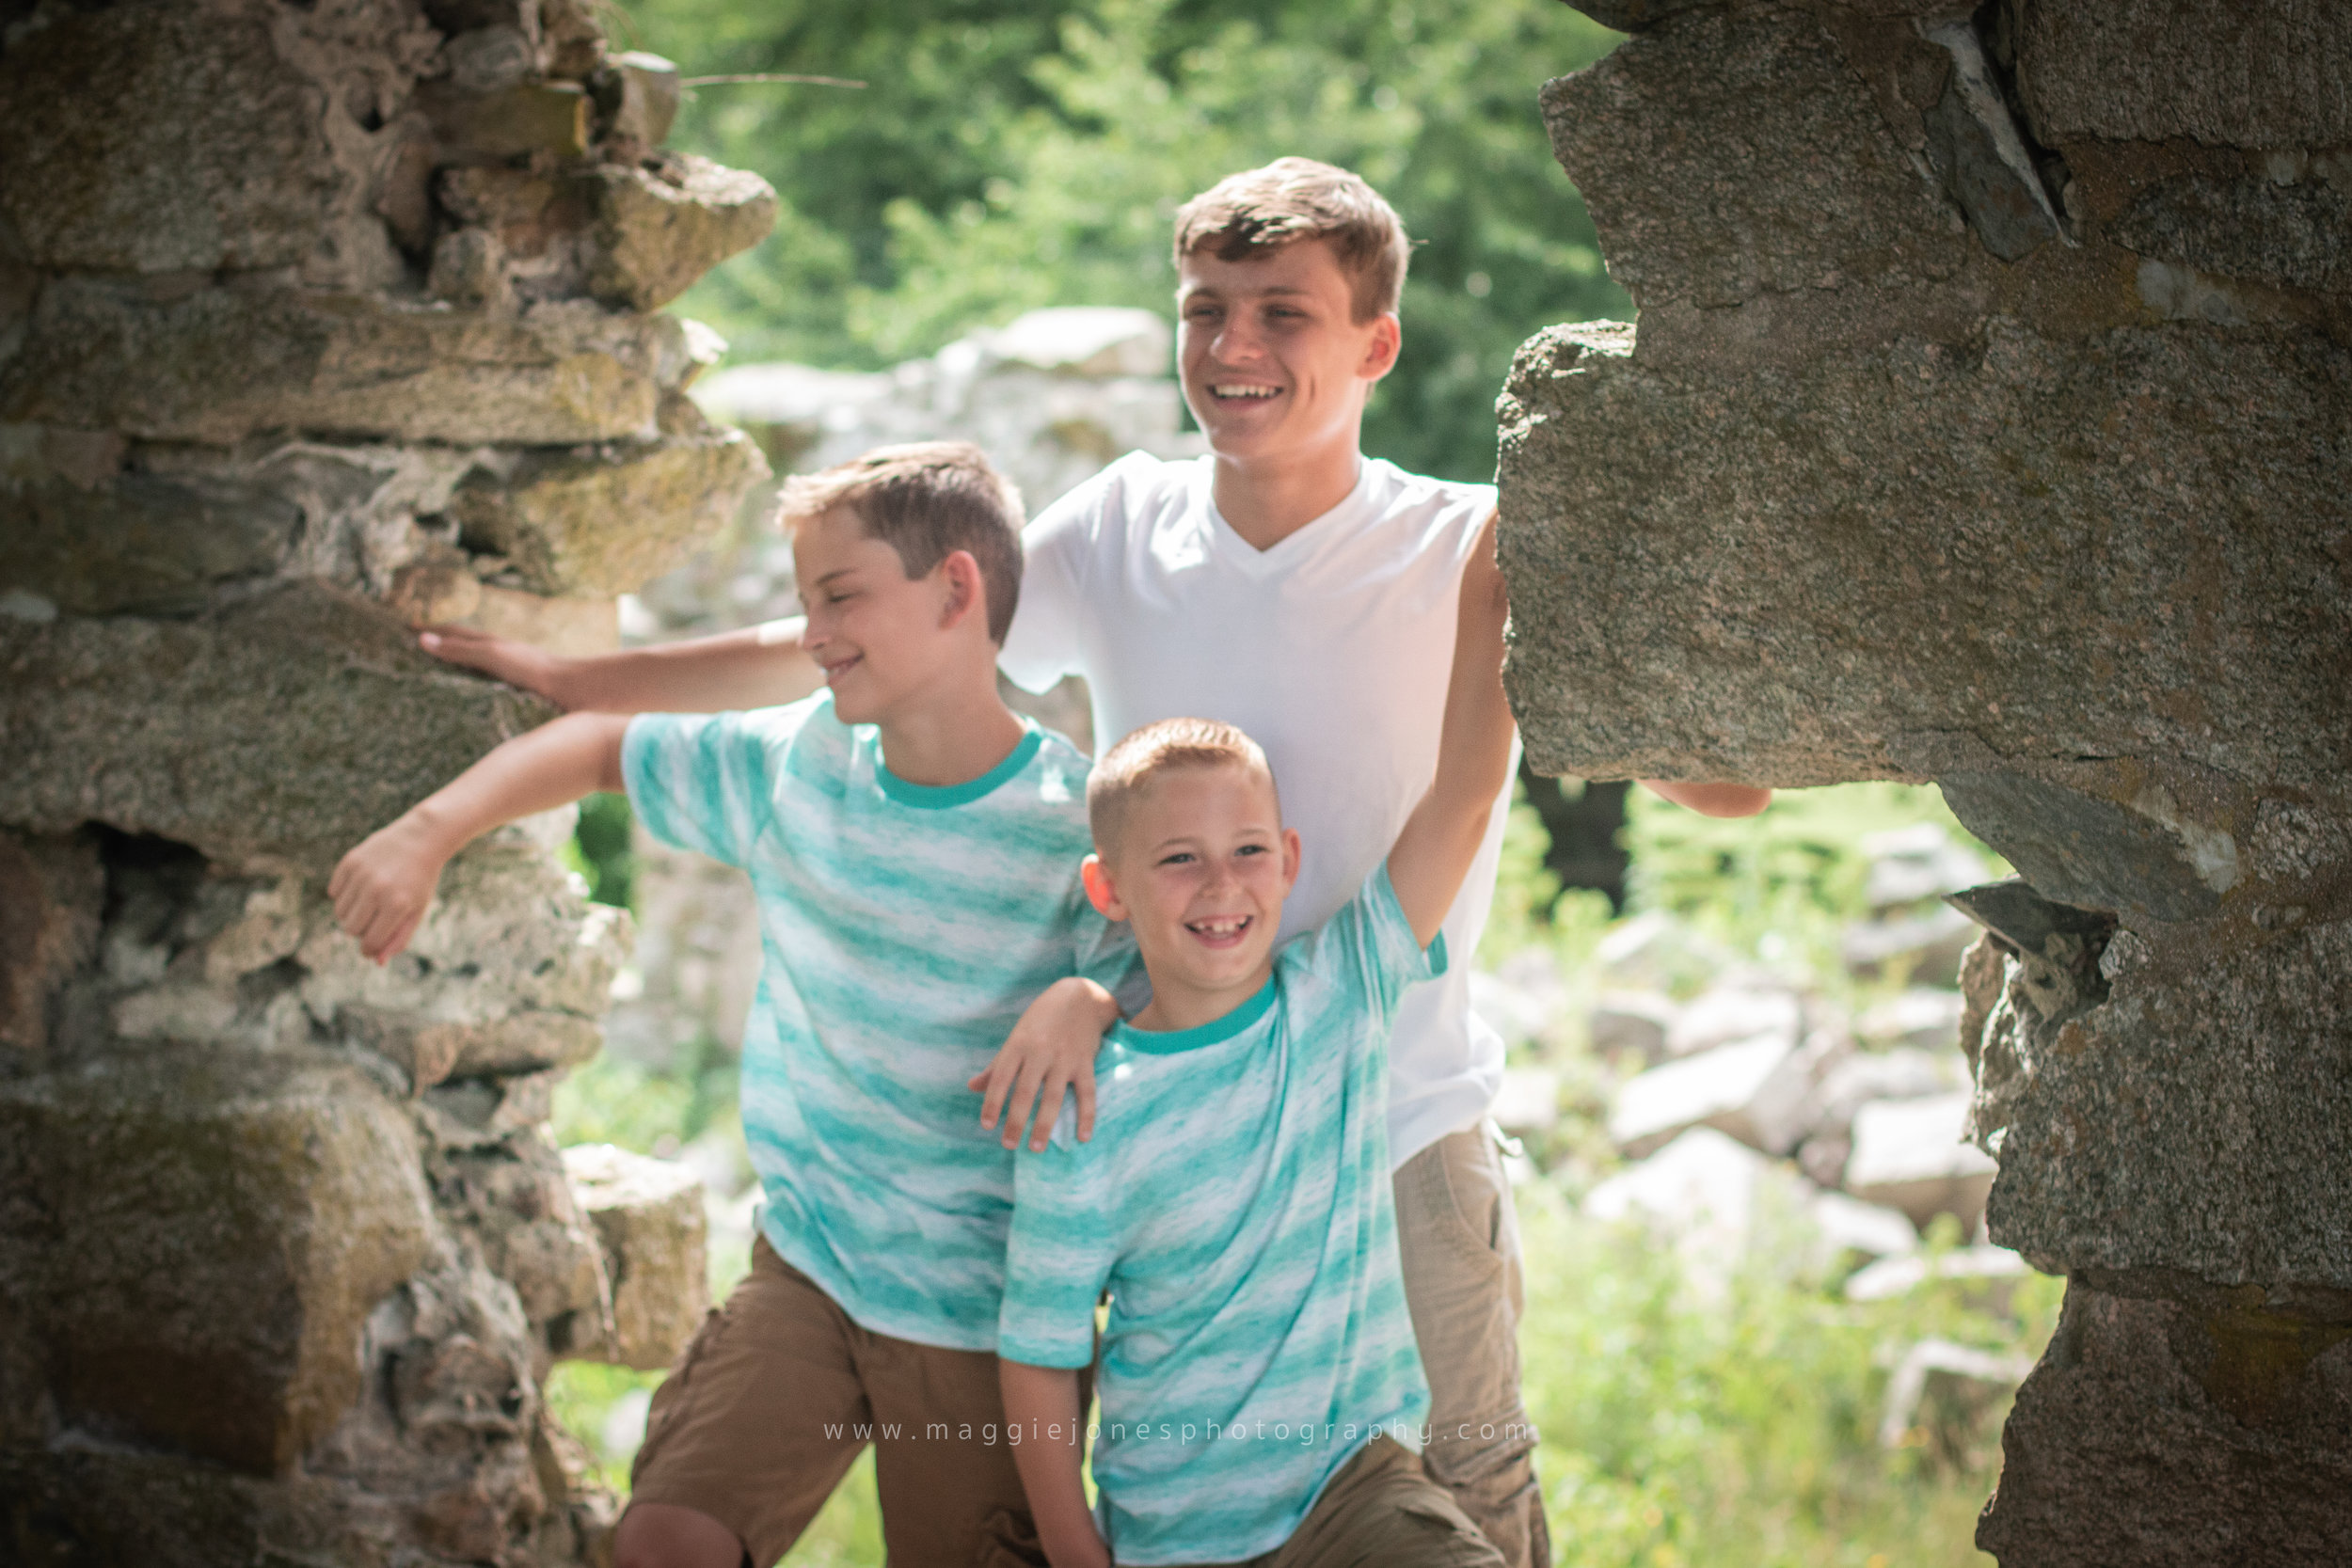 AmandaBrown_July2018FamilySession-1-22.jpg